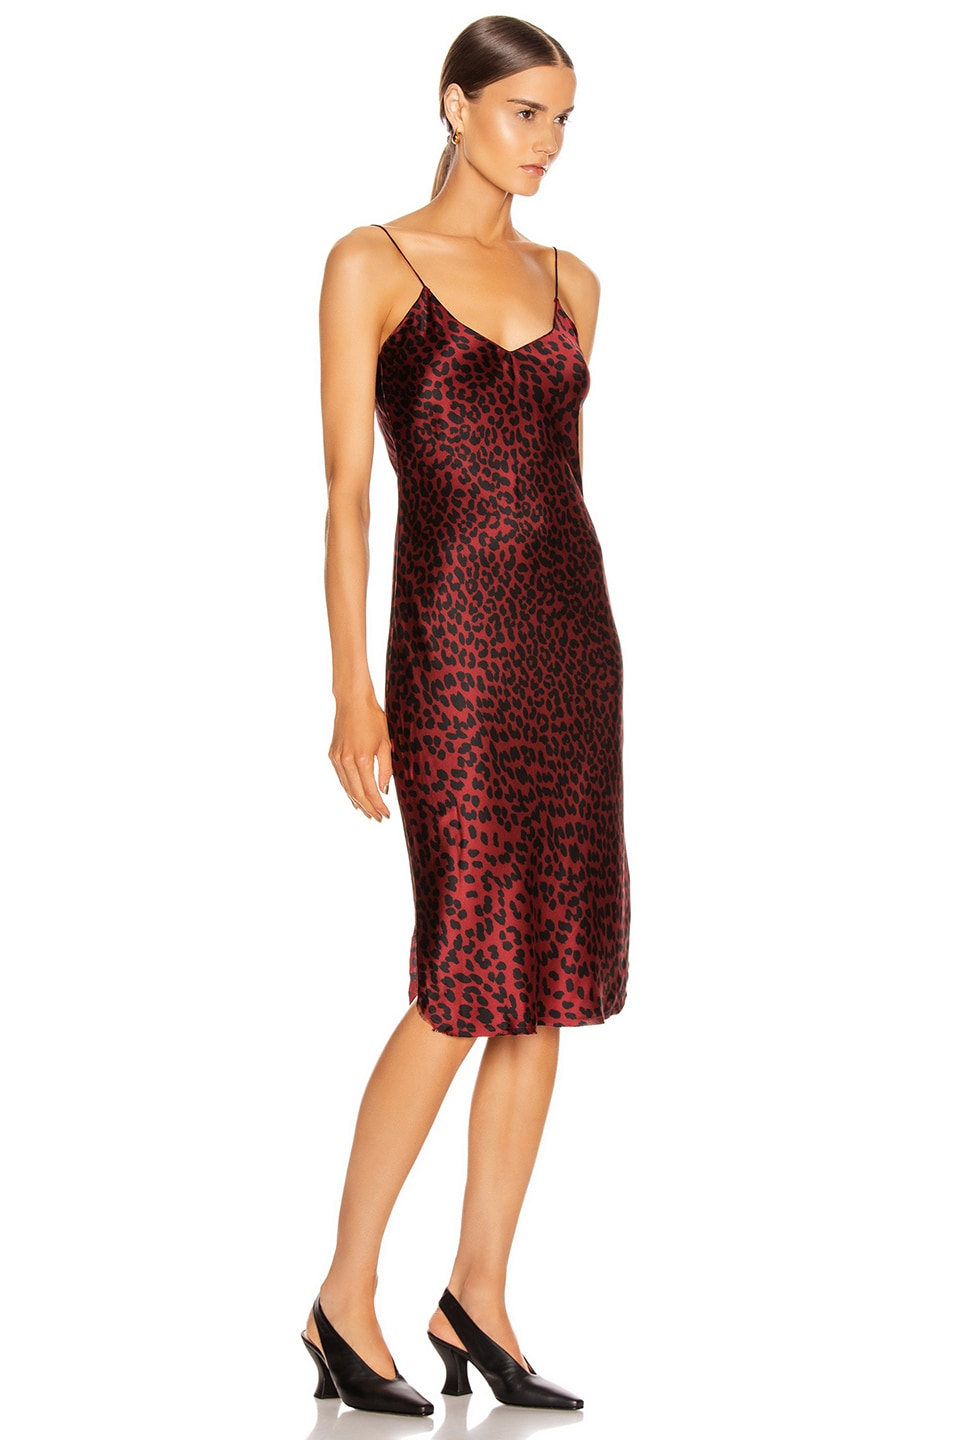 Image 2 of NILI LOTAN Short Cami Dress in Ruby Leopard Print